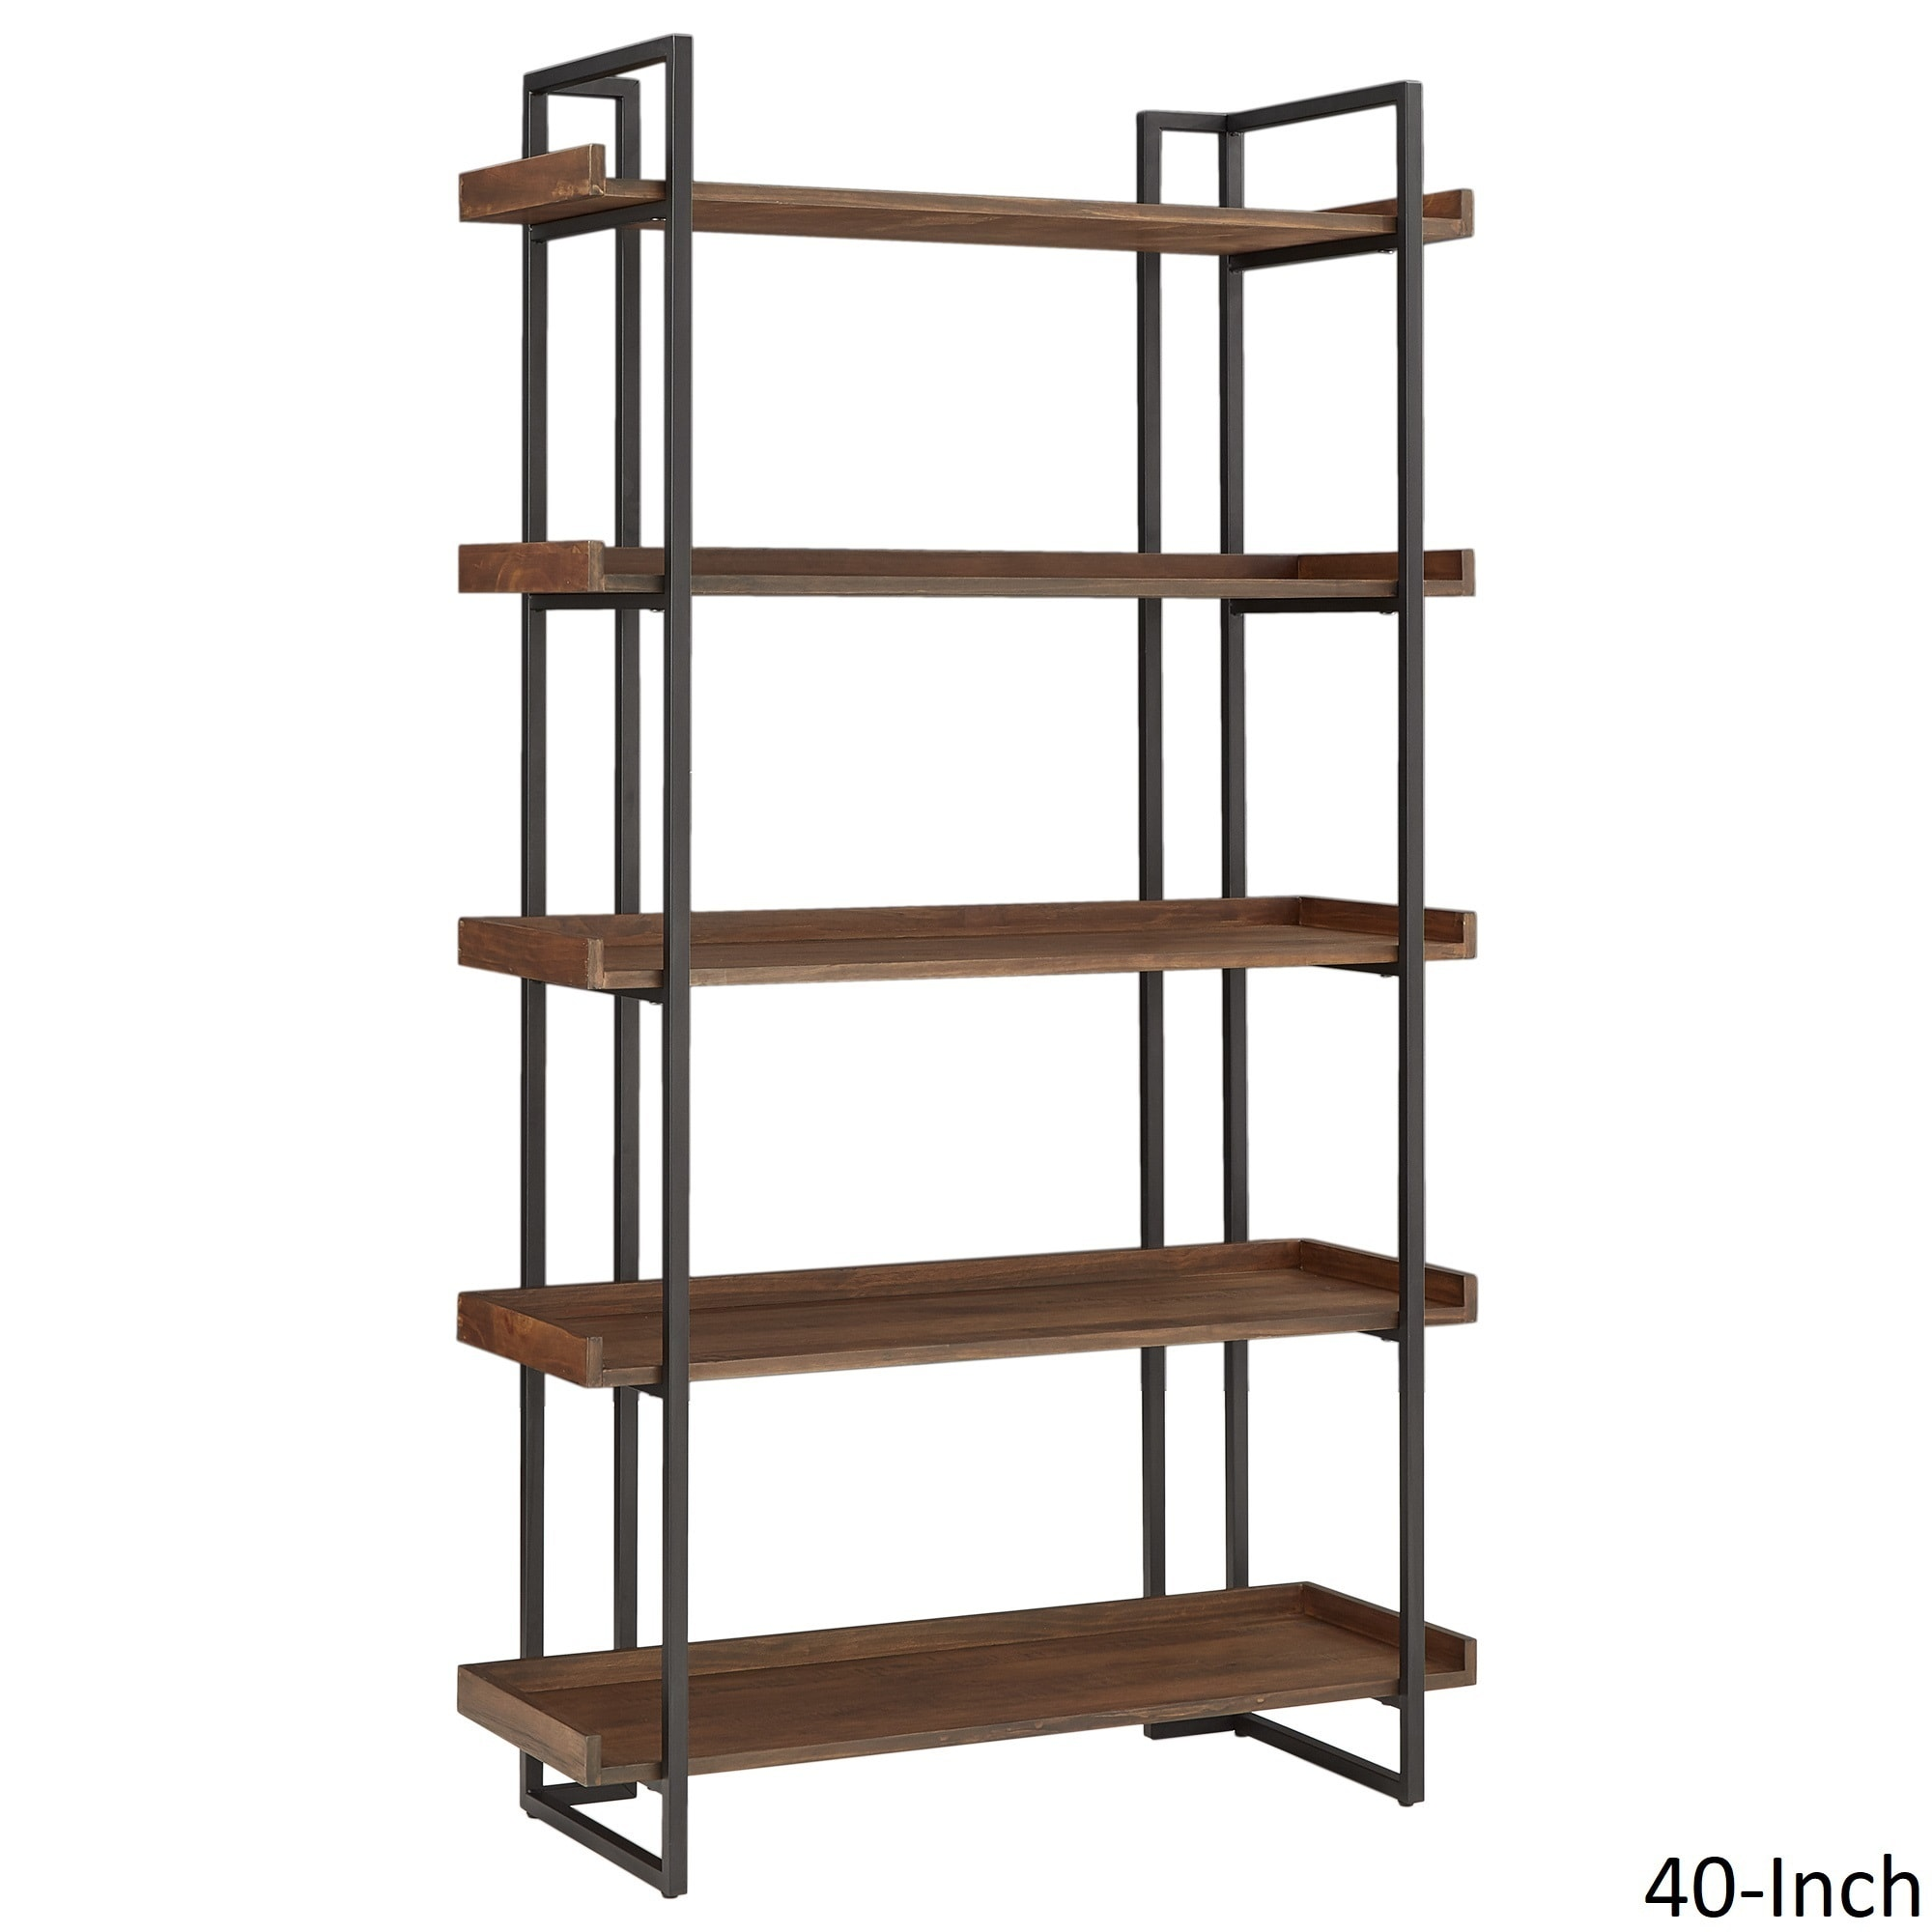 Corey Rustic Brown Etagere Bookcases By Inspire Q Modern Free Shipping Today